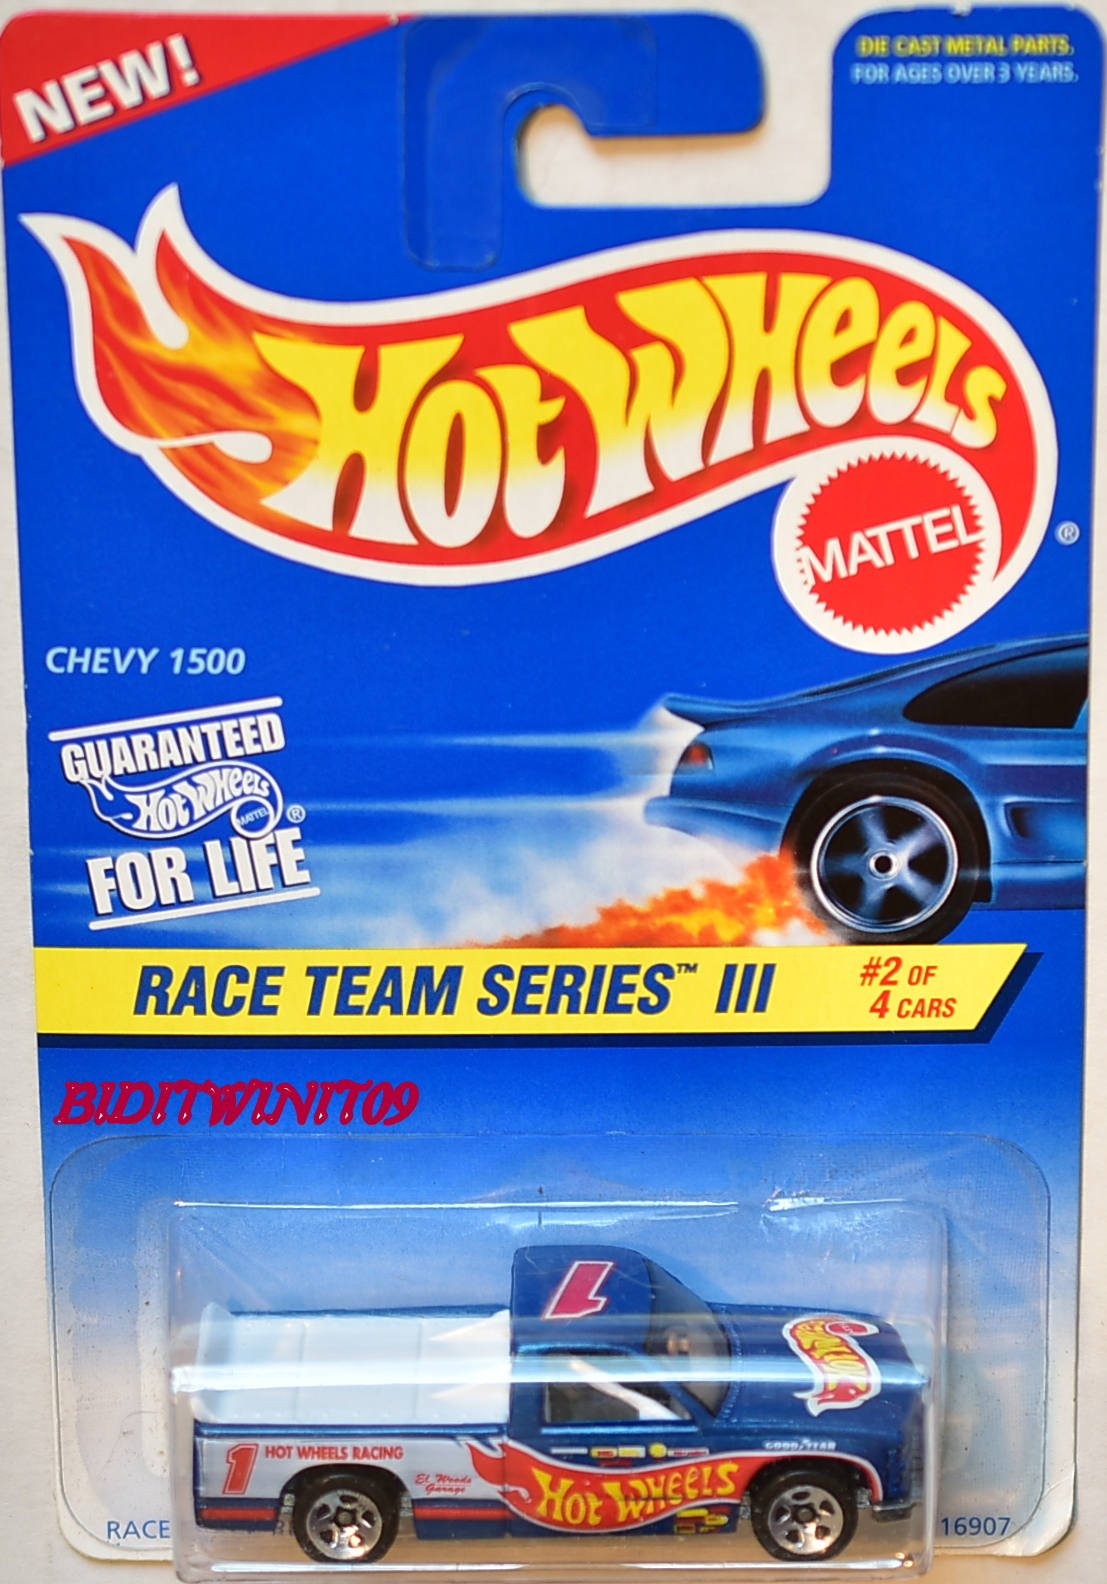 HOT WHEELS1996 RACE TEAM SERIES III CHEVY 1500 #2/4 BLUE